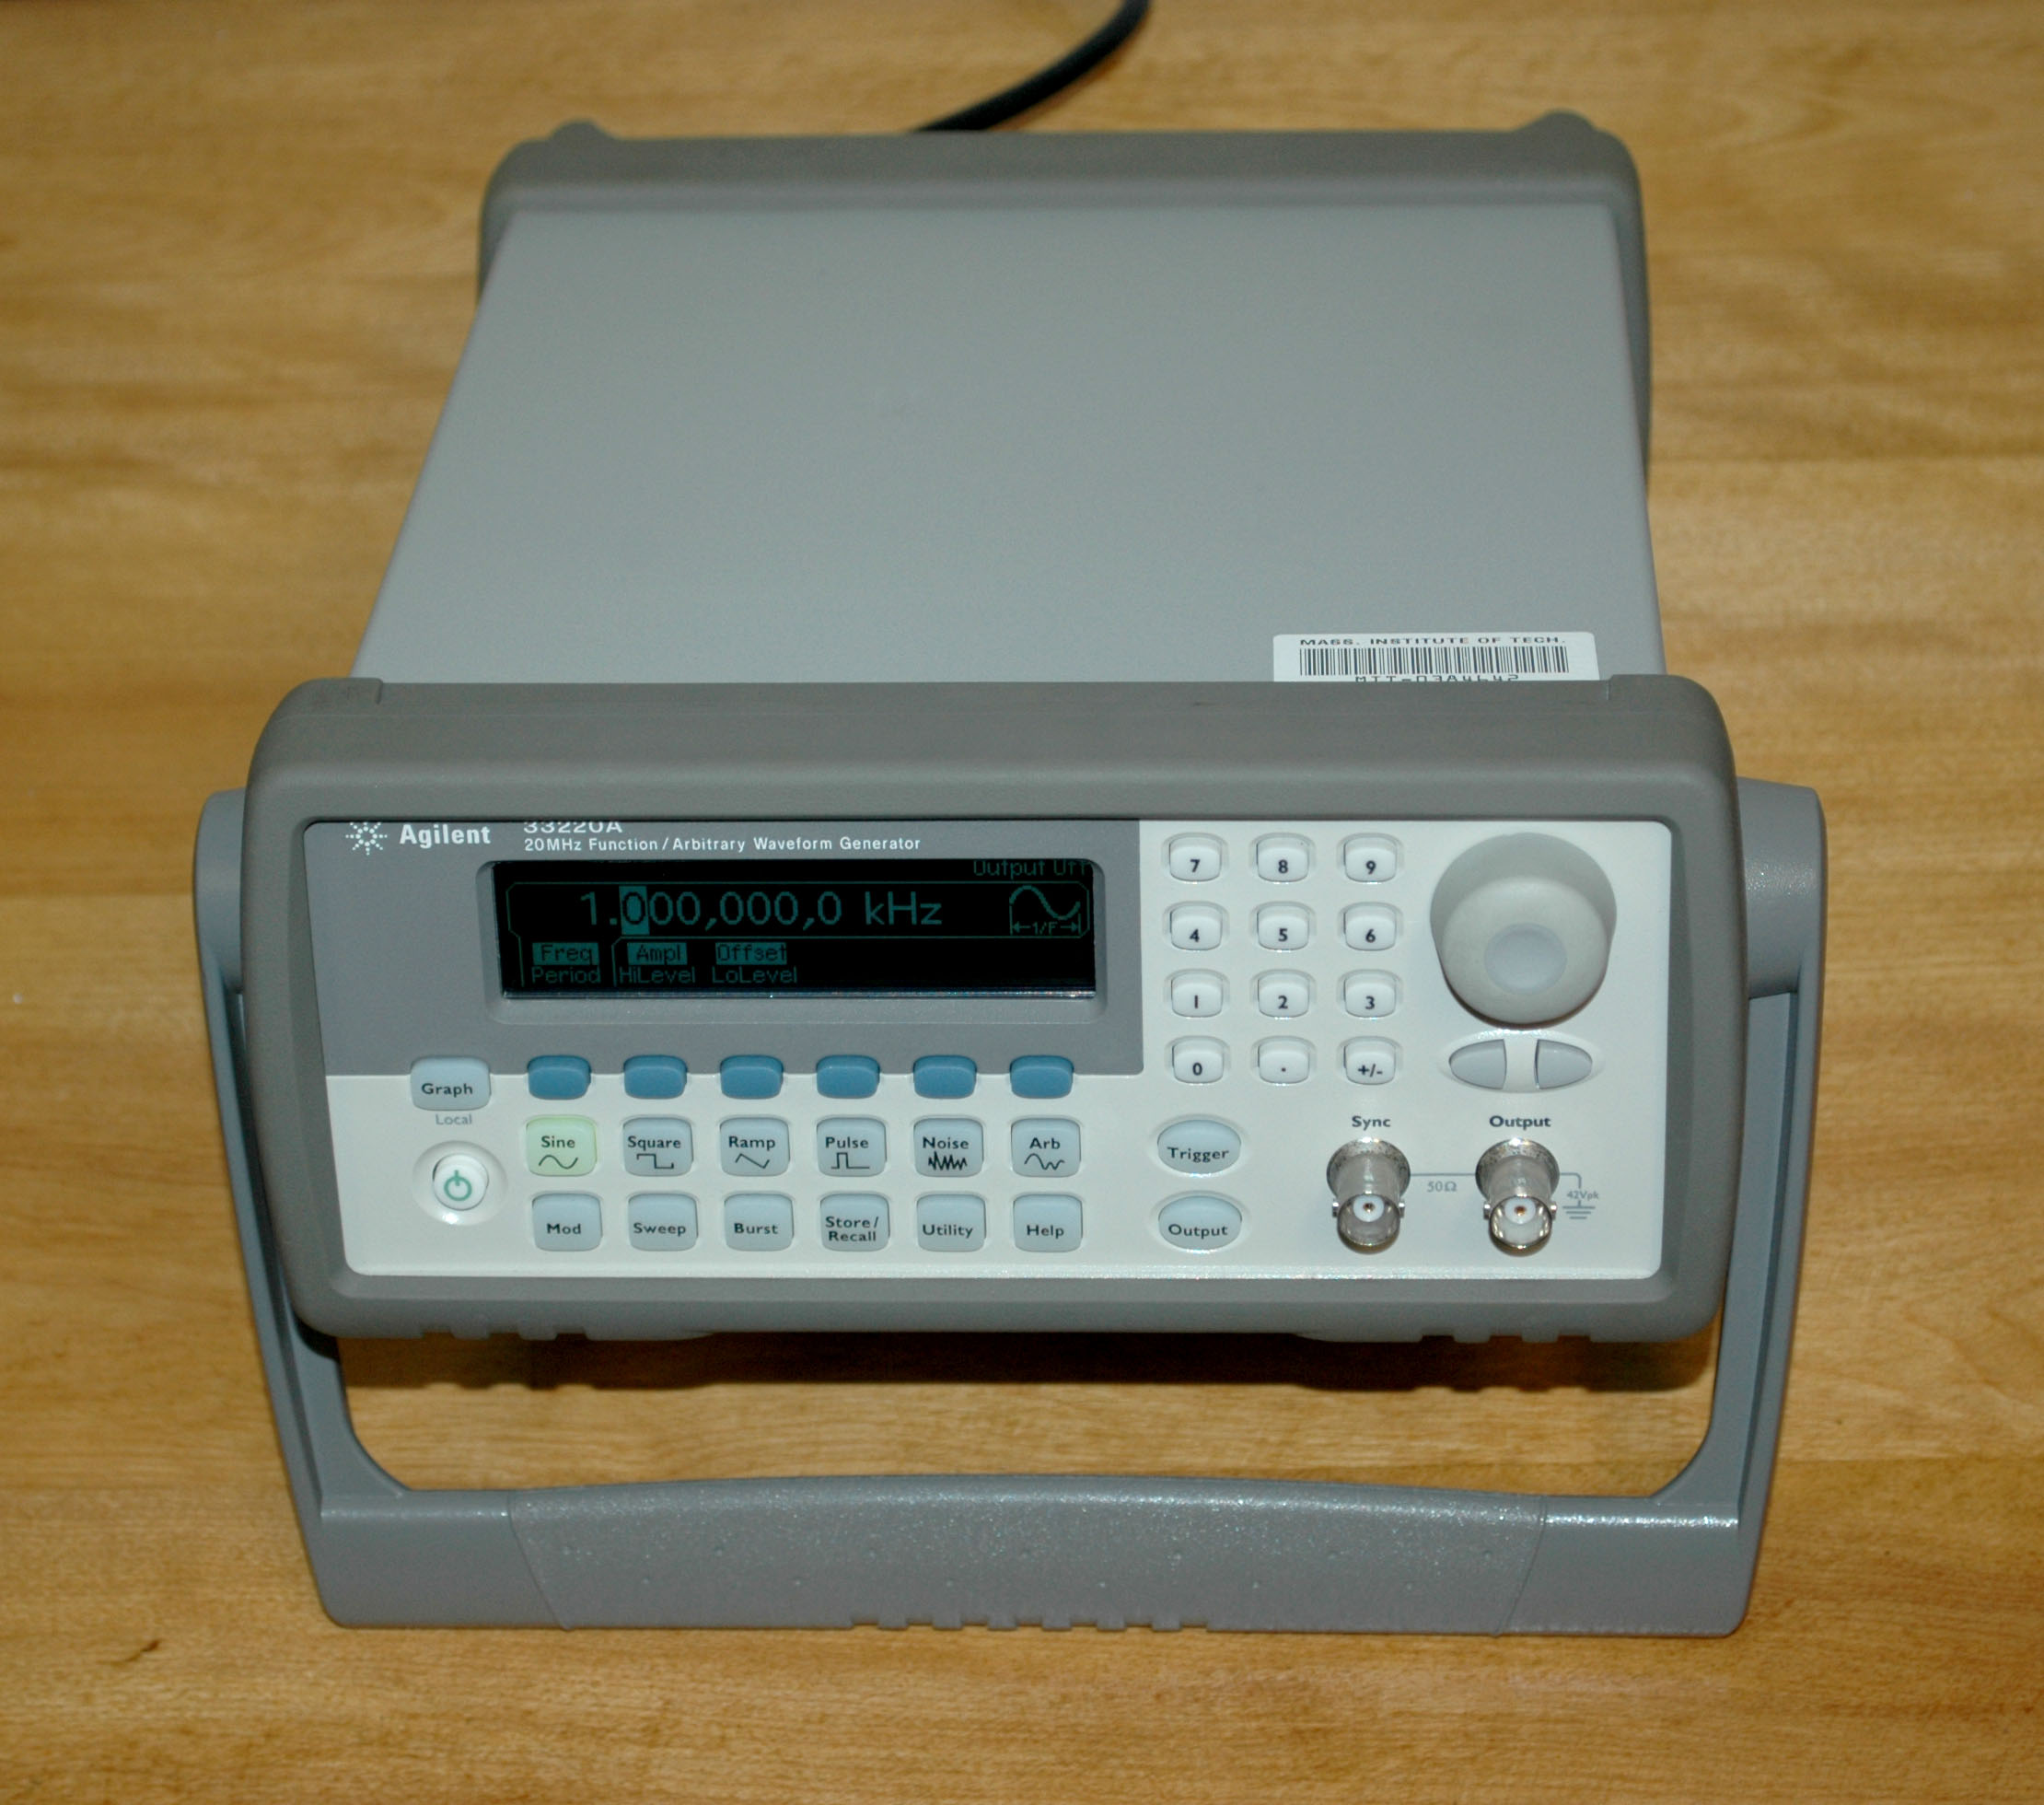 cleaning the encoders in agilent 33220a function generators d rh dasarodesigns com Agilent 33220A Manual Function Generator